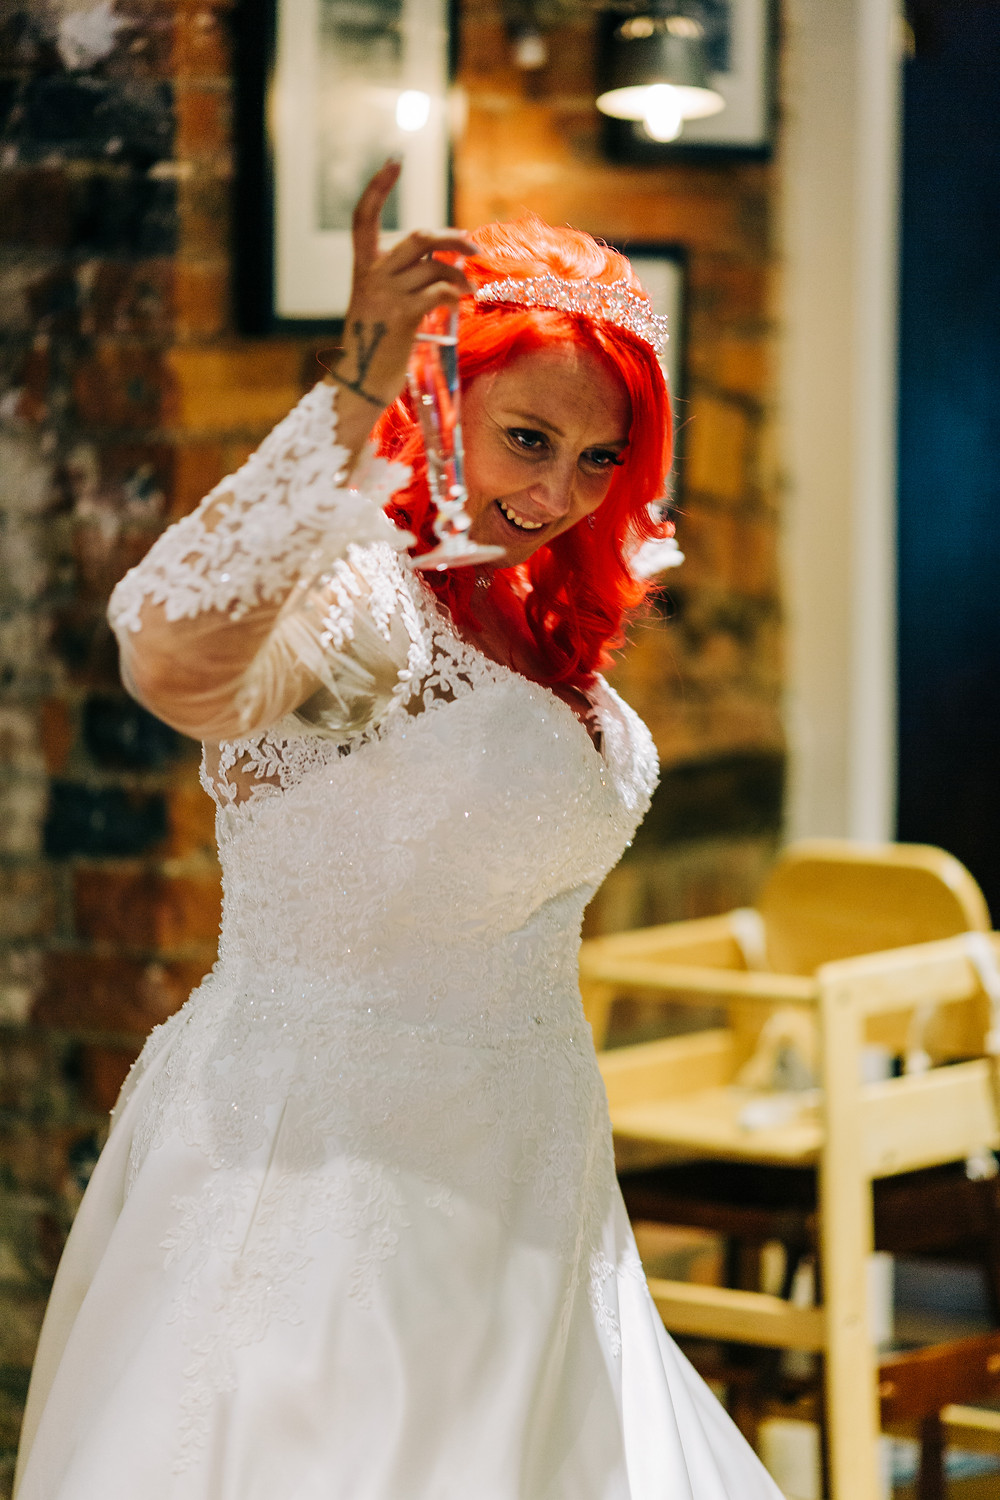 Colourful alternative wedding photography showing bride with drink after ceremony at Holiday Inn Newcastle Jesmond